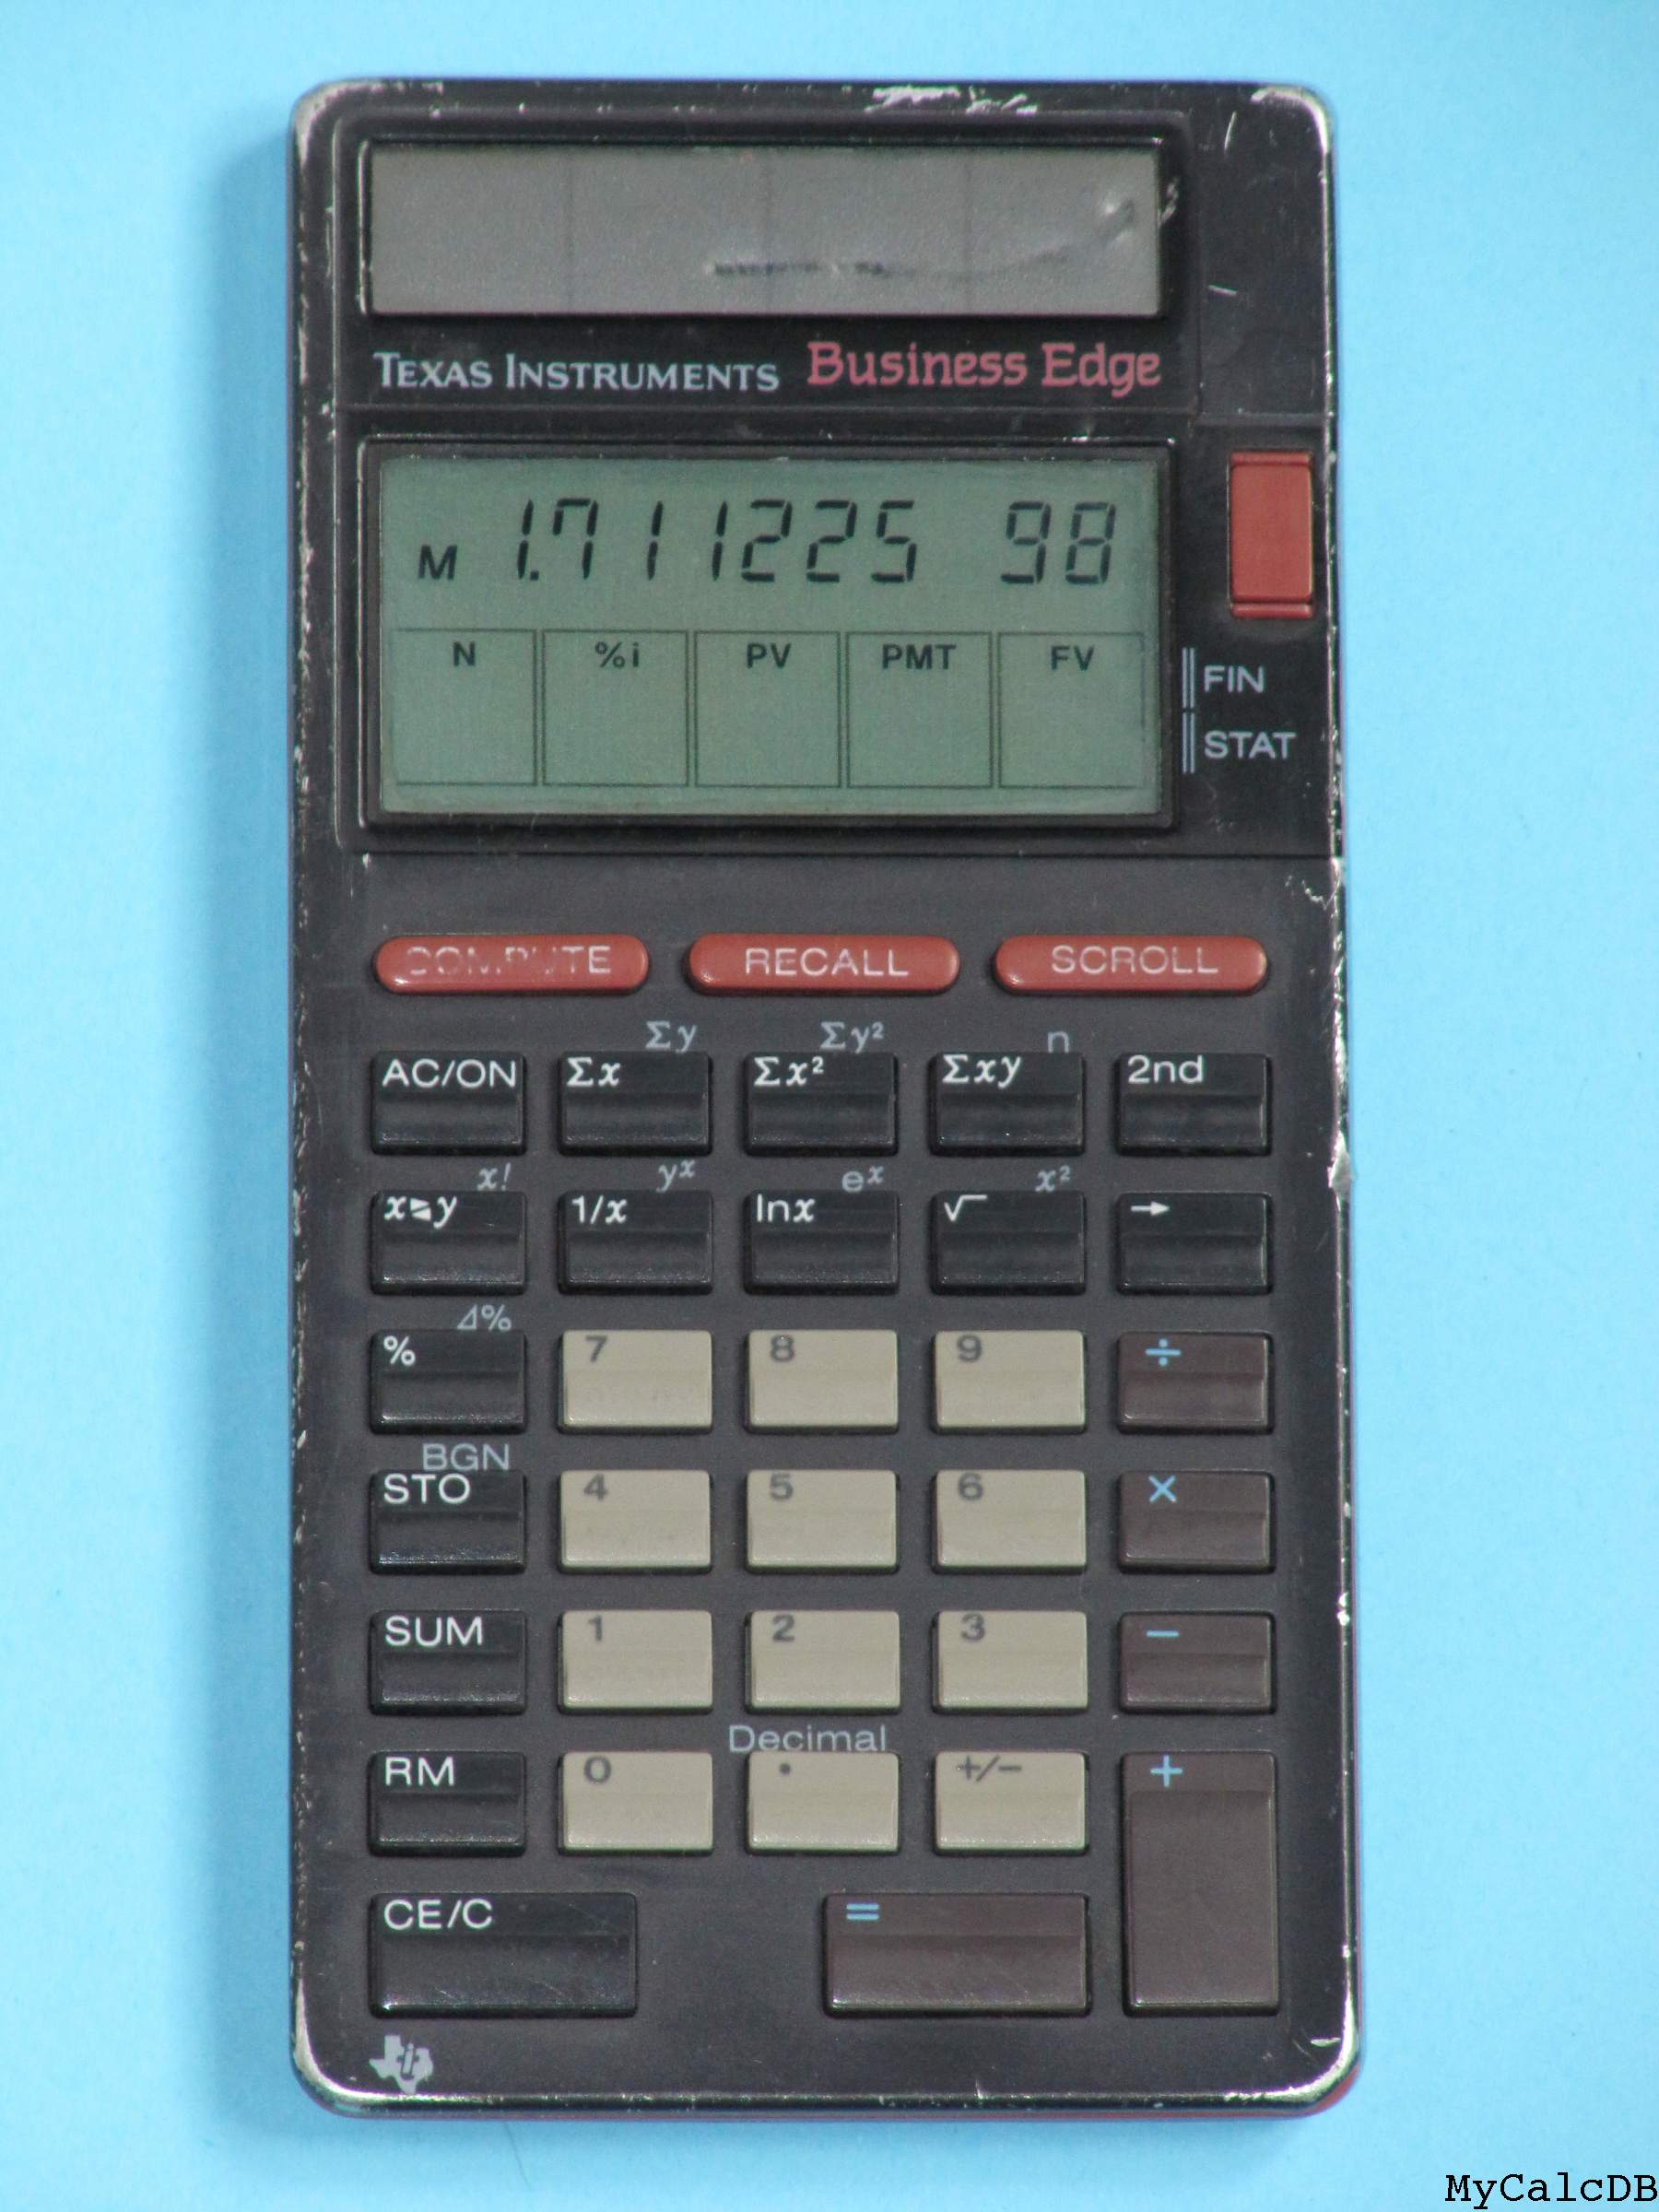 Texas Instruments Business Edge